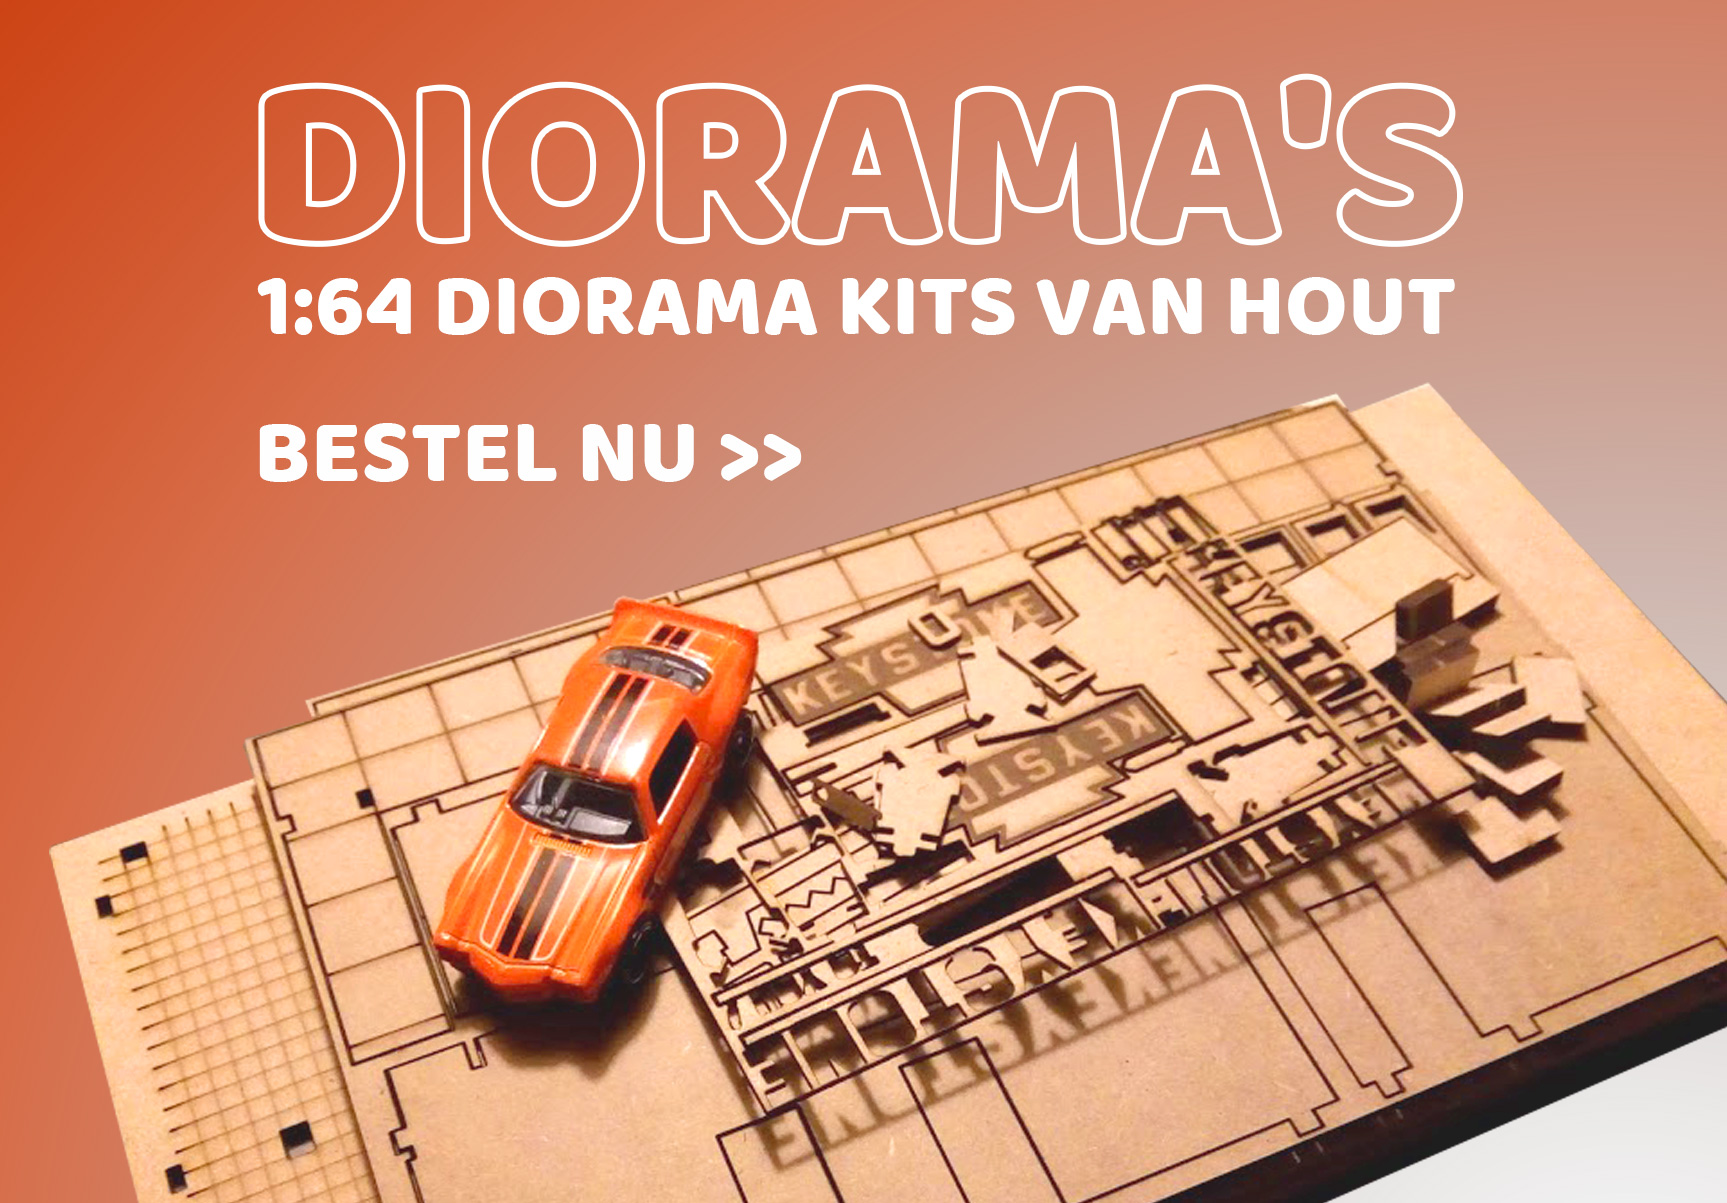 dio-kits-home-banner-50